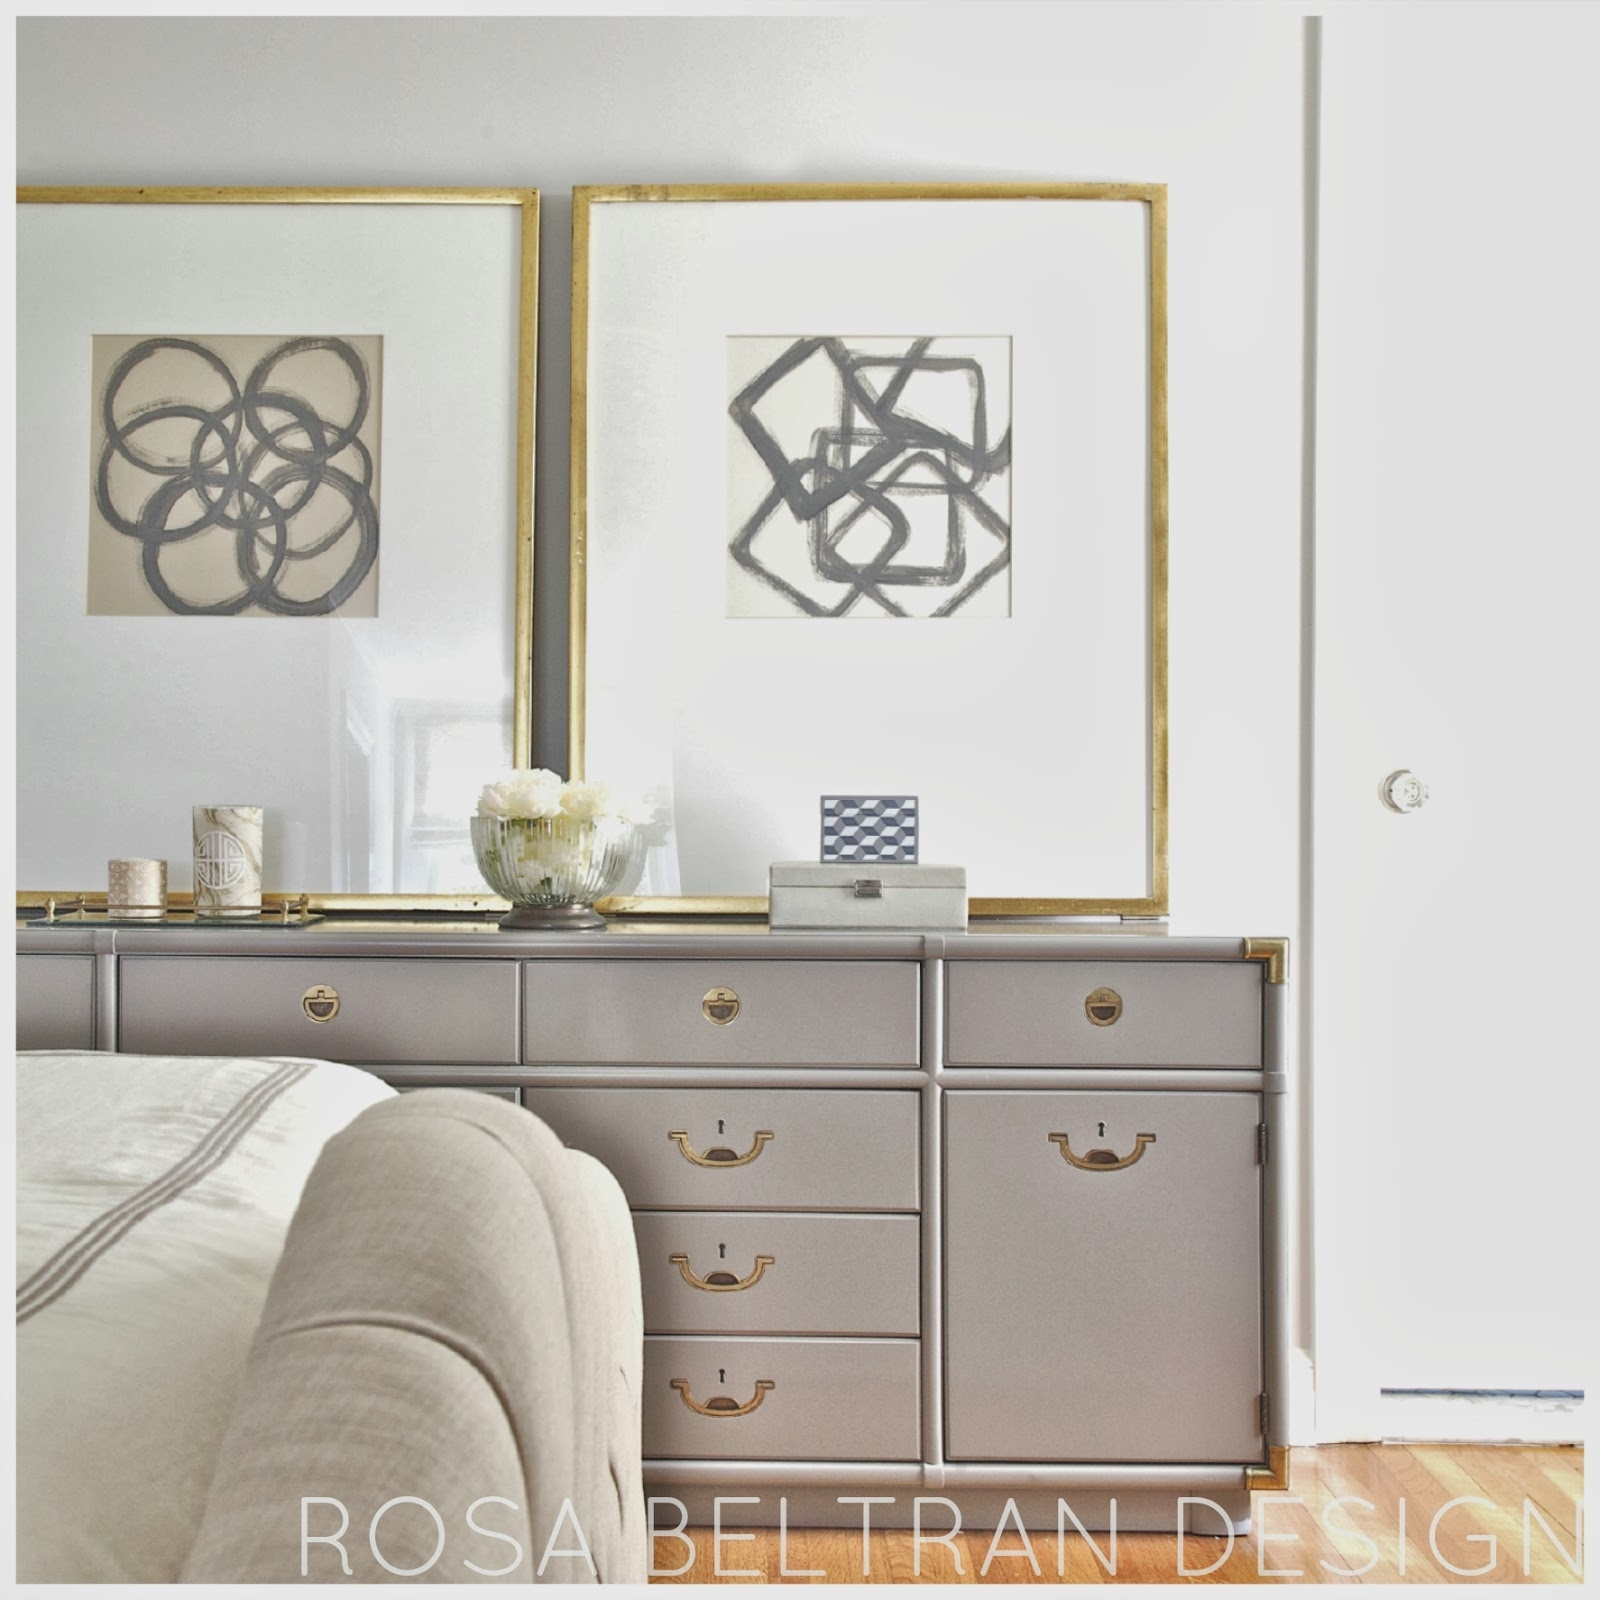 Rosa Beltran Design: Diy Wall Art Series: Modern Abstracts Throughout Most Recently Released Diy Abstract Wall Art (View 20 of 20)